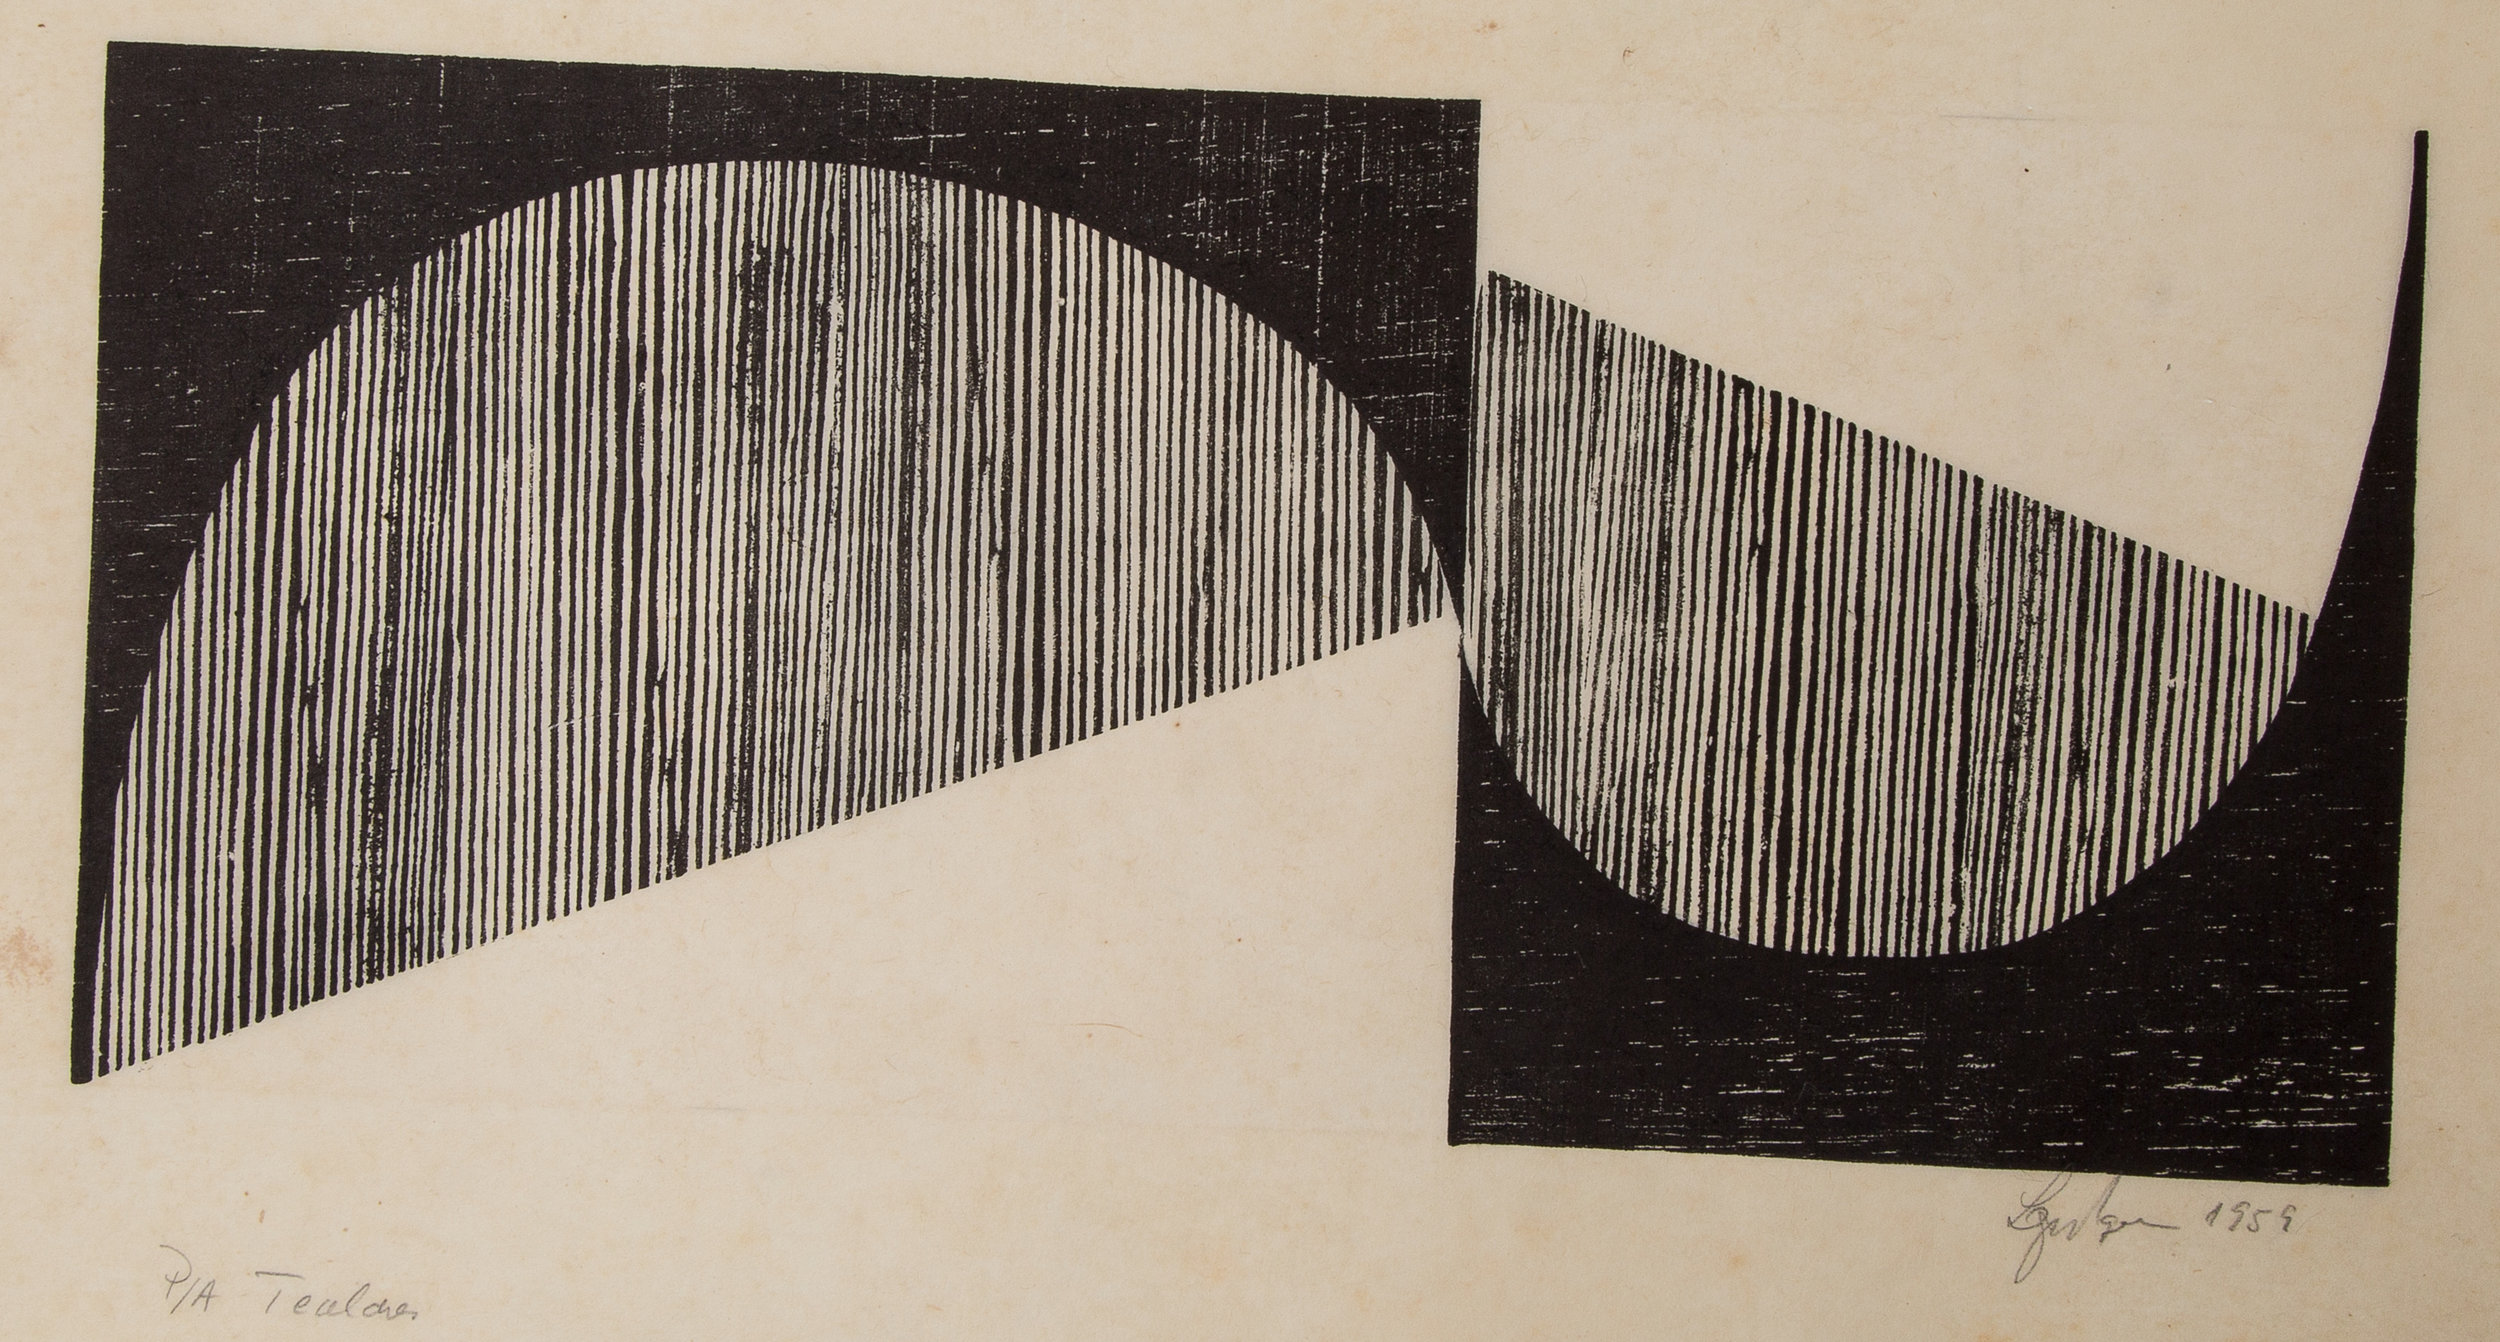 Lygia Pape (Brazilian, 1927–2004) Tecelar 1959 Woodcut on Japanese paper, 11 7/8 x 21 1/4 in. (30 x 54 cm) Photo: Paula Pape © Projeto Lygia Pape